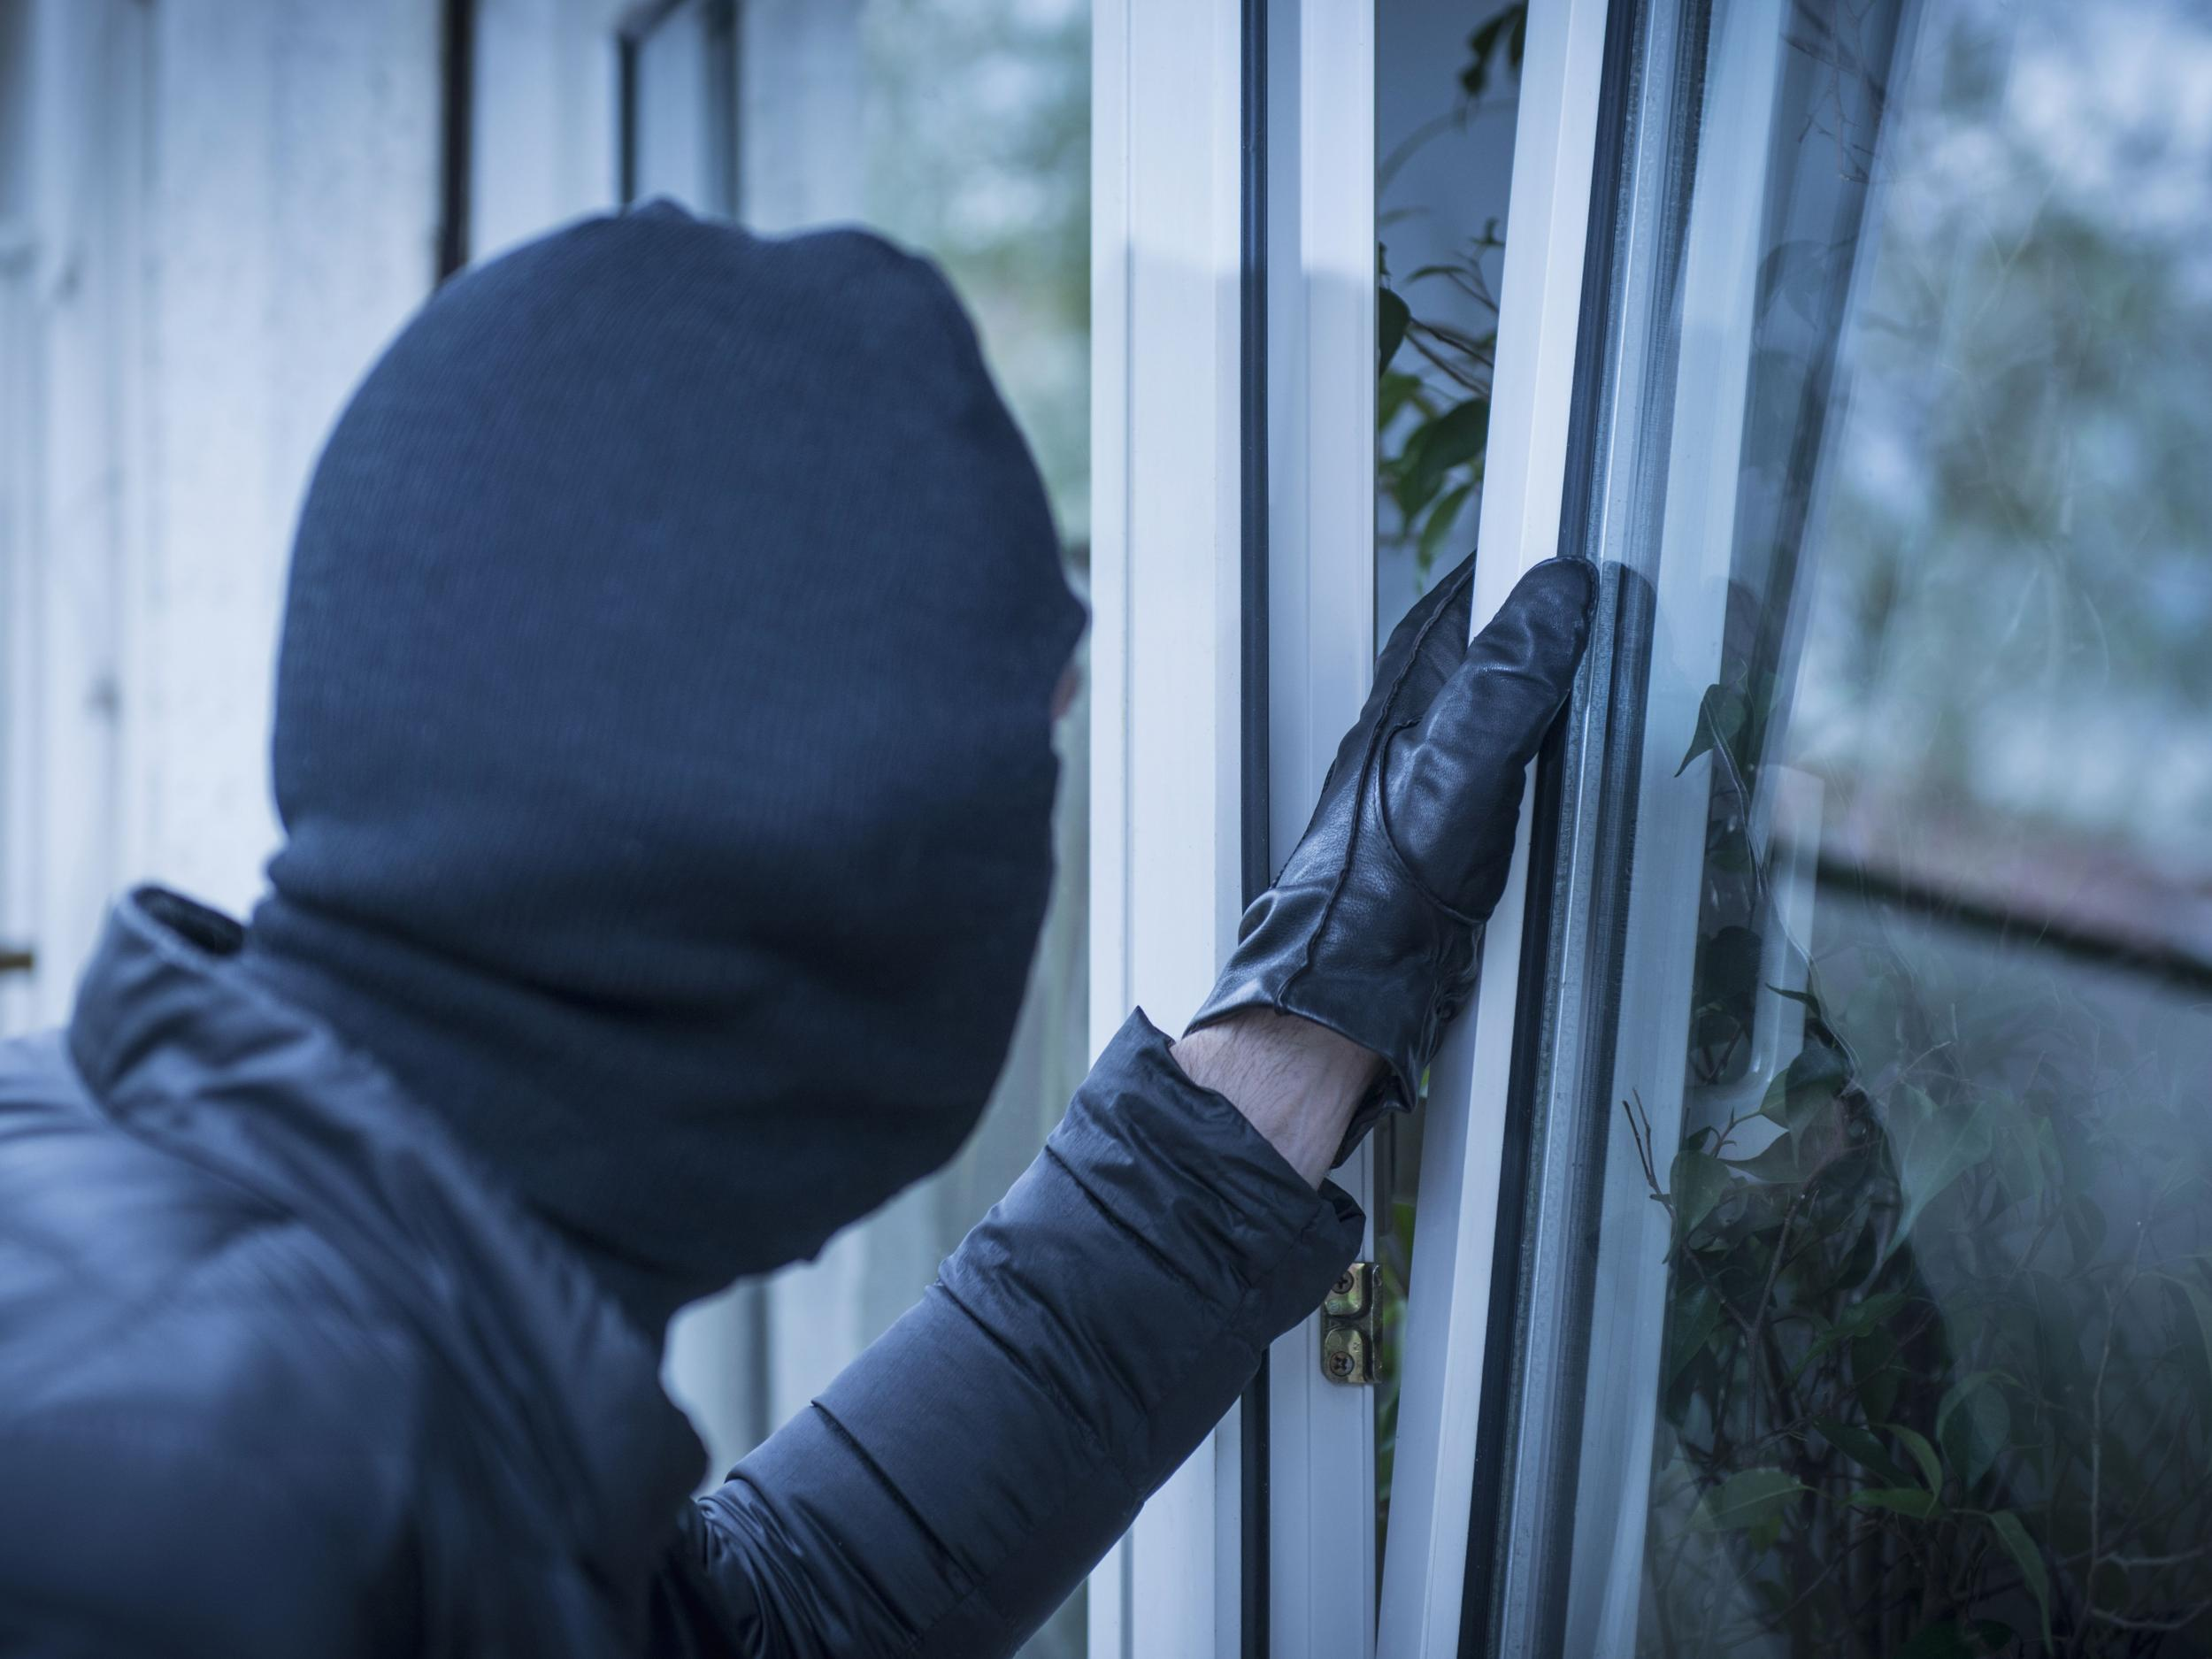 99f2ea946db Convicted burglars advise homeowners on how to protect themselves from  break-ins